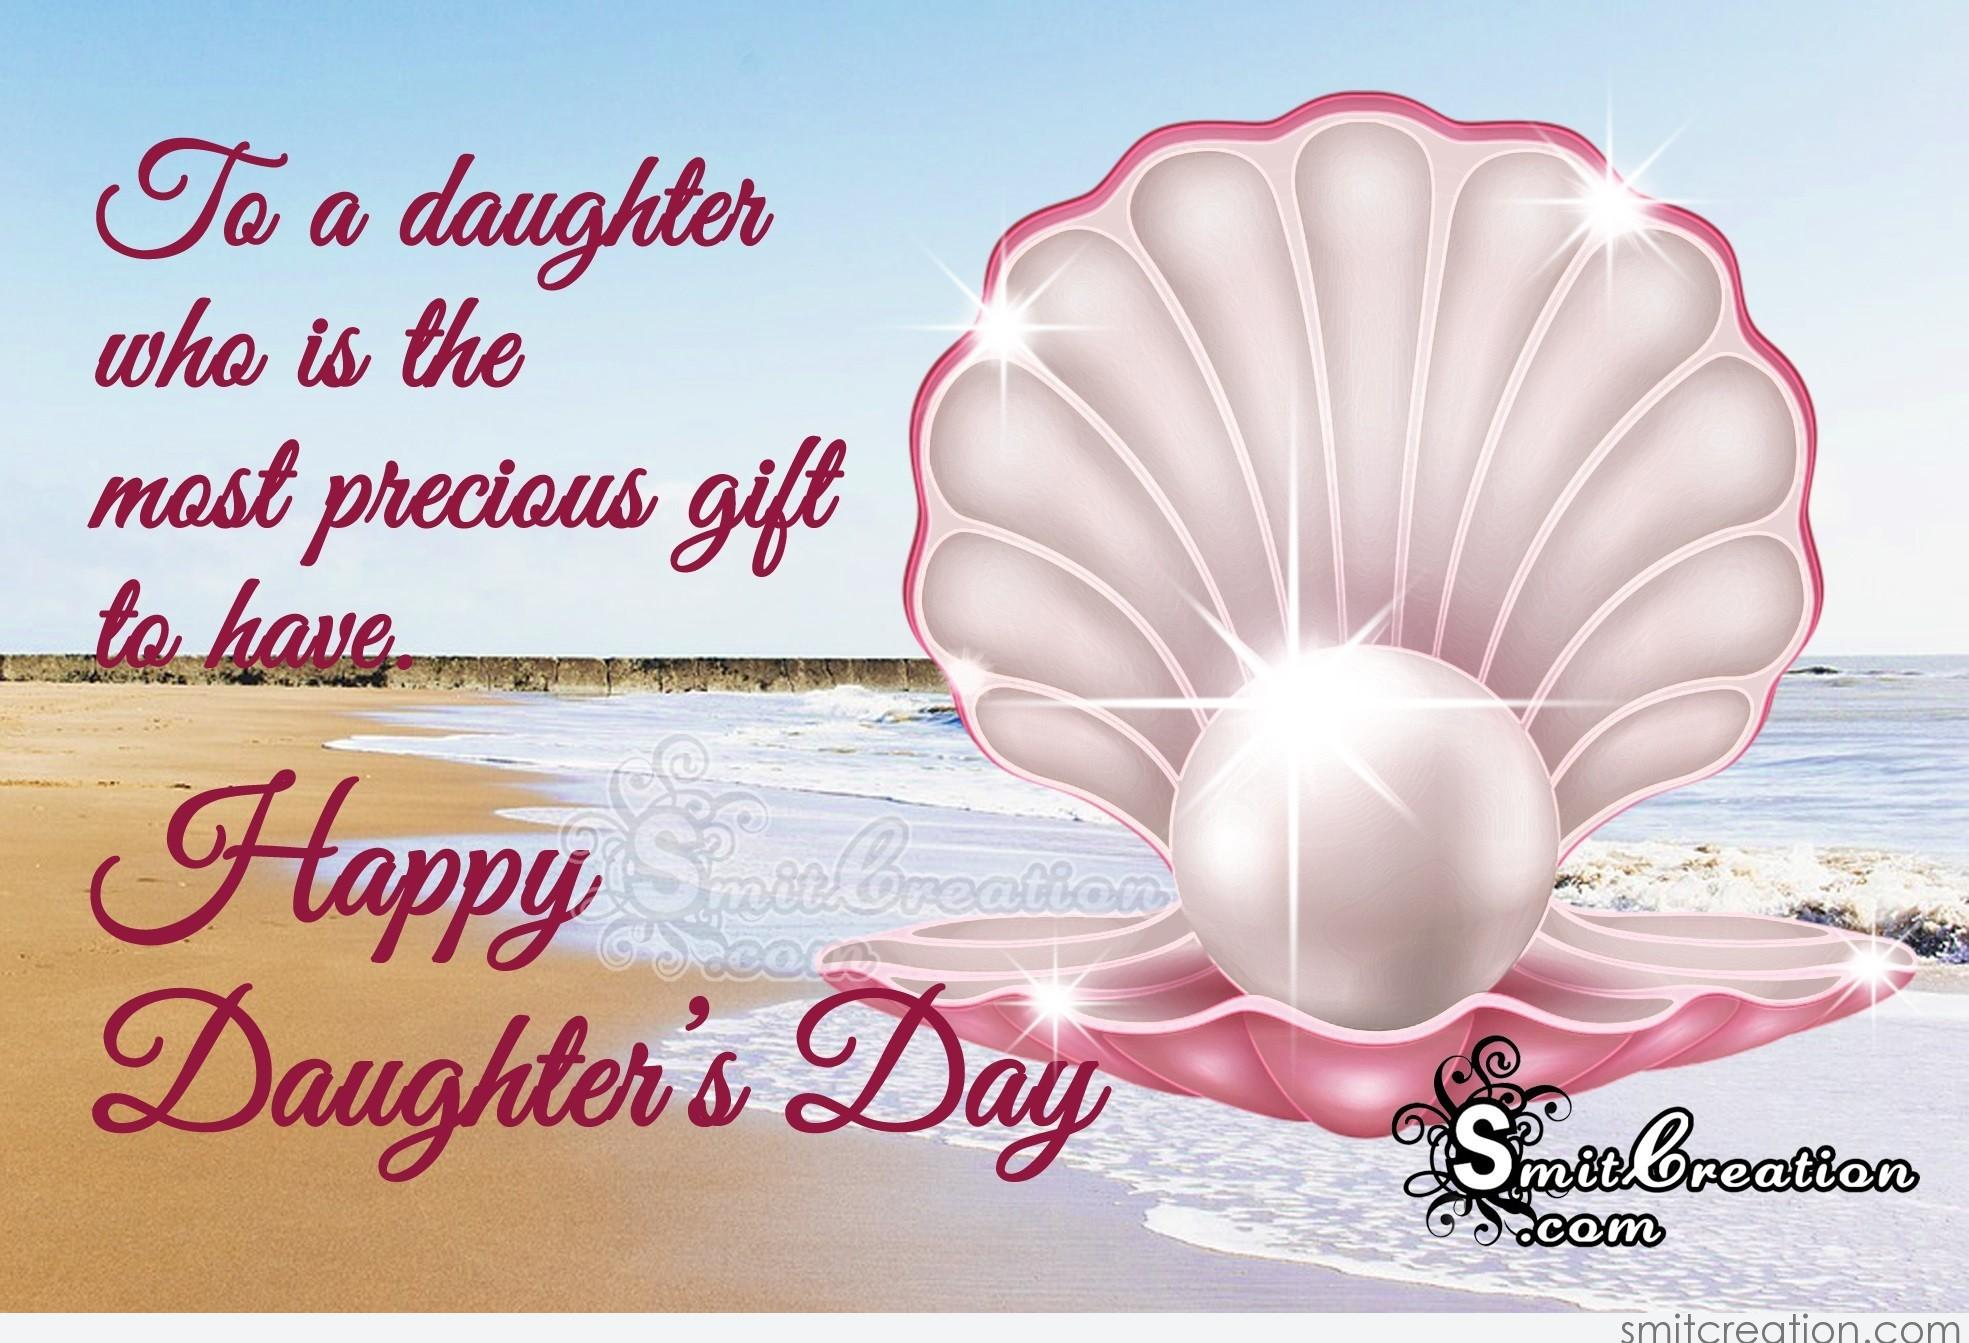 Daughters Day Pictures And Graphics Smitcreationcom